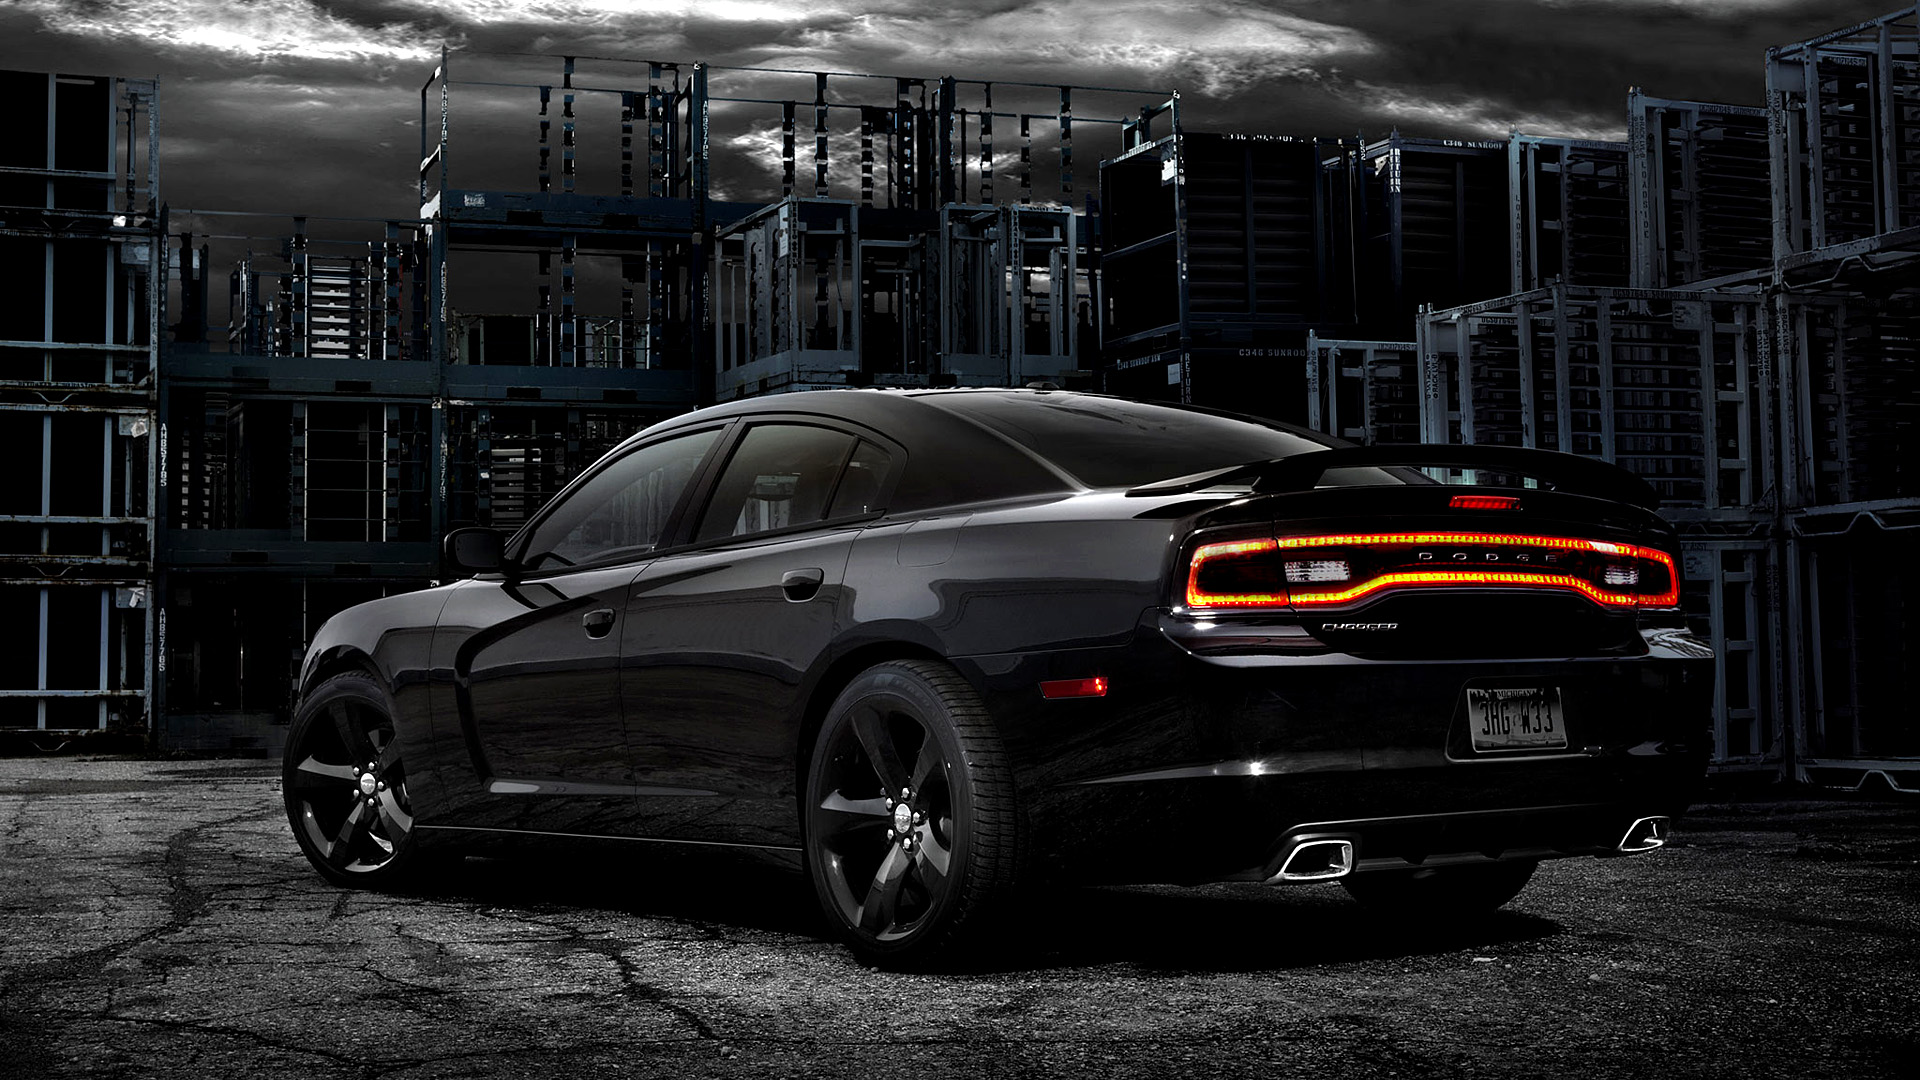 Dodge Charger RT Wallpaper 17   1920 X 1080 stmednet 1920x1080